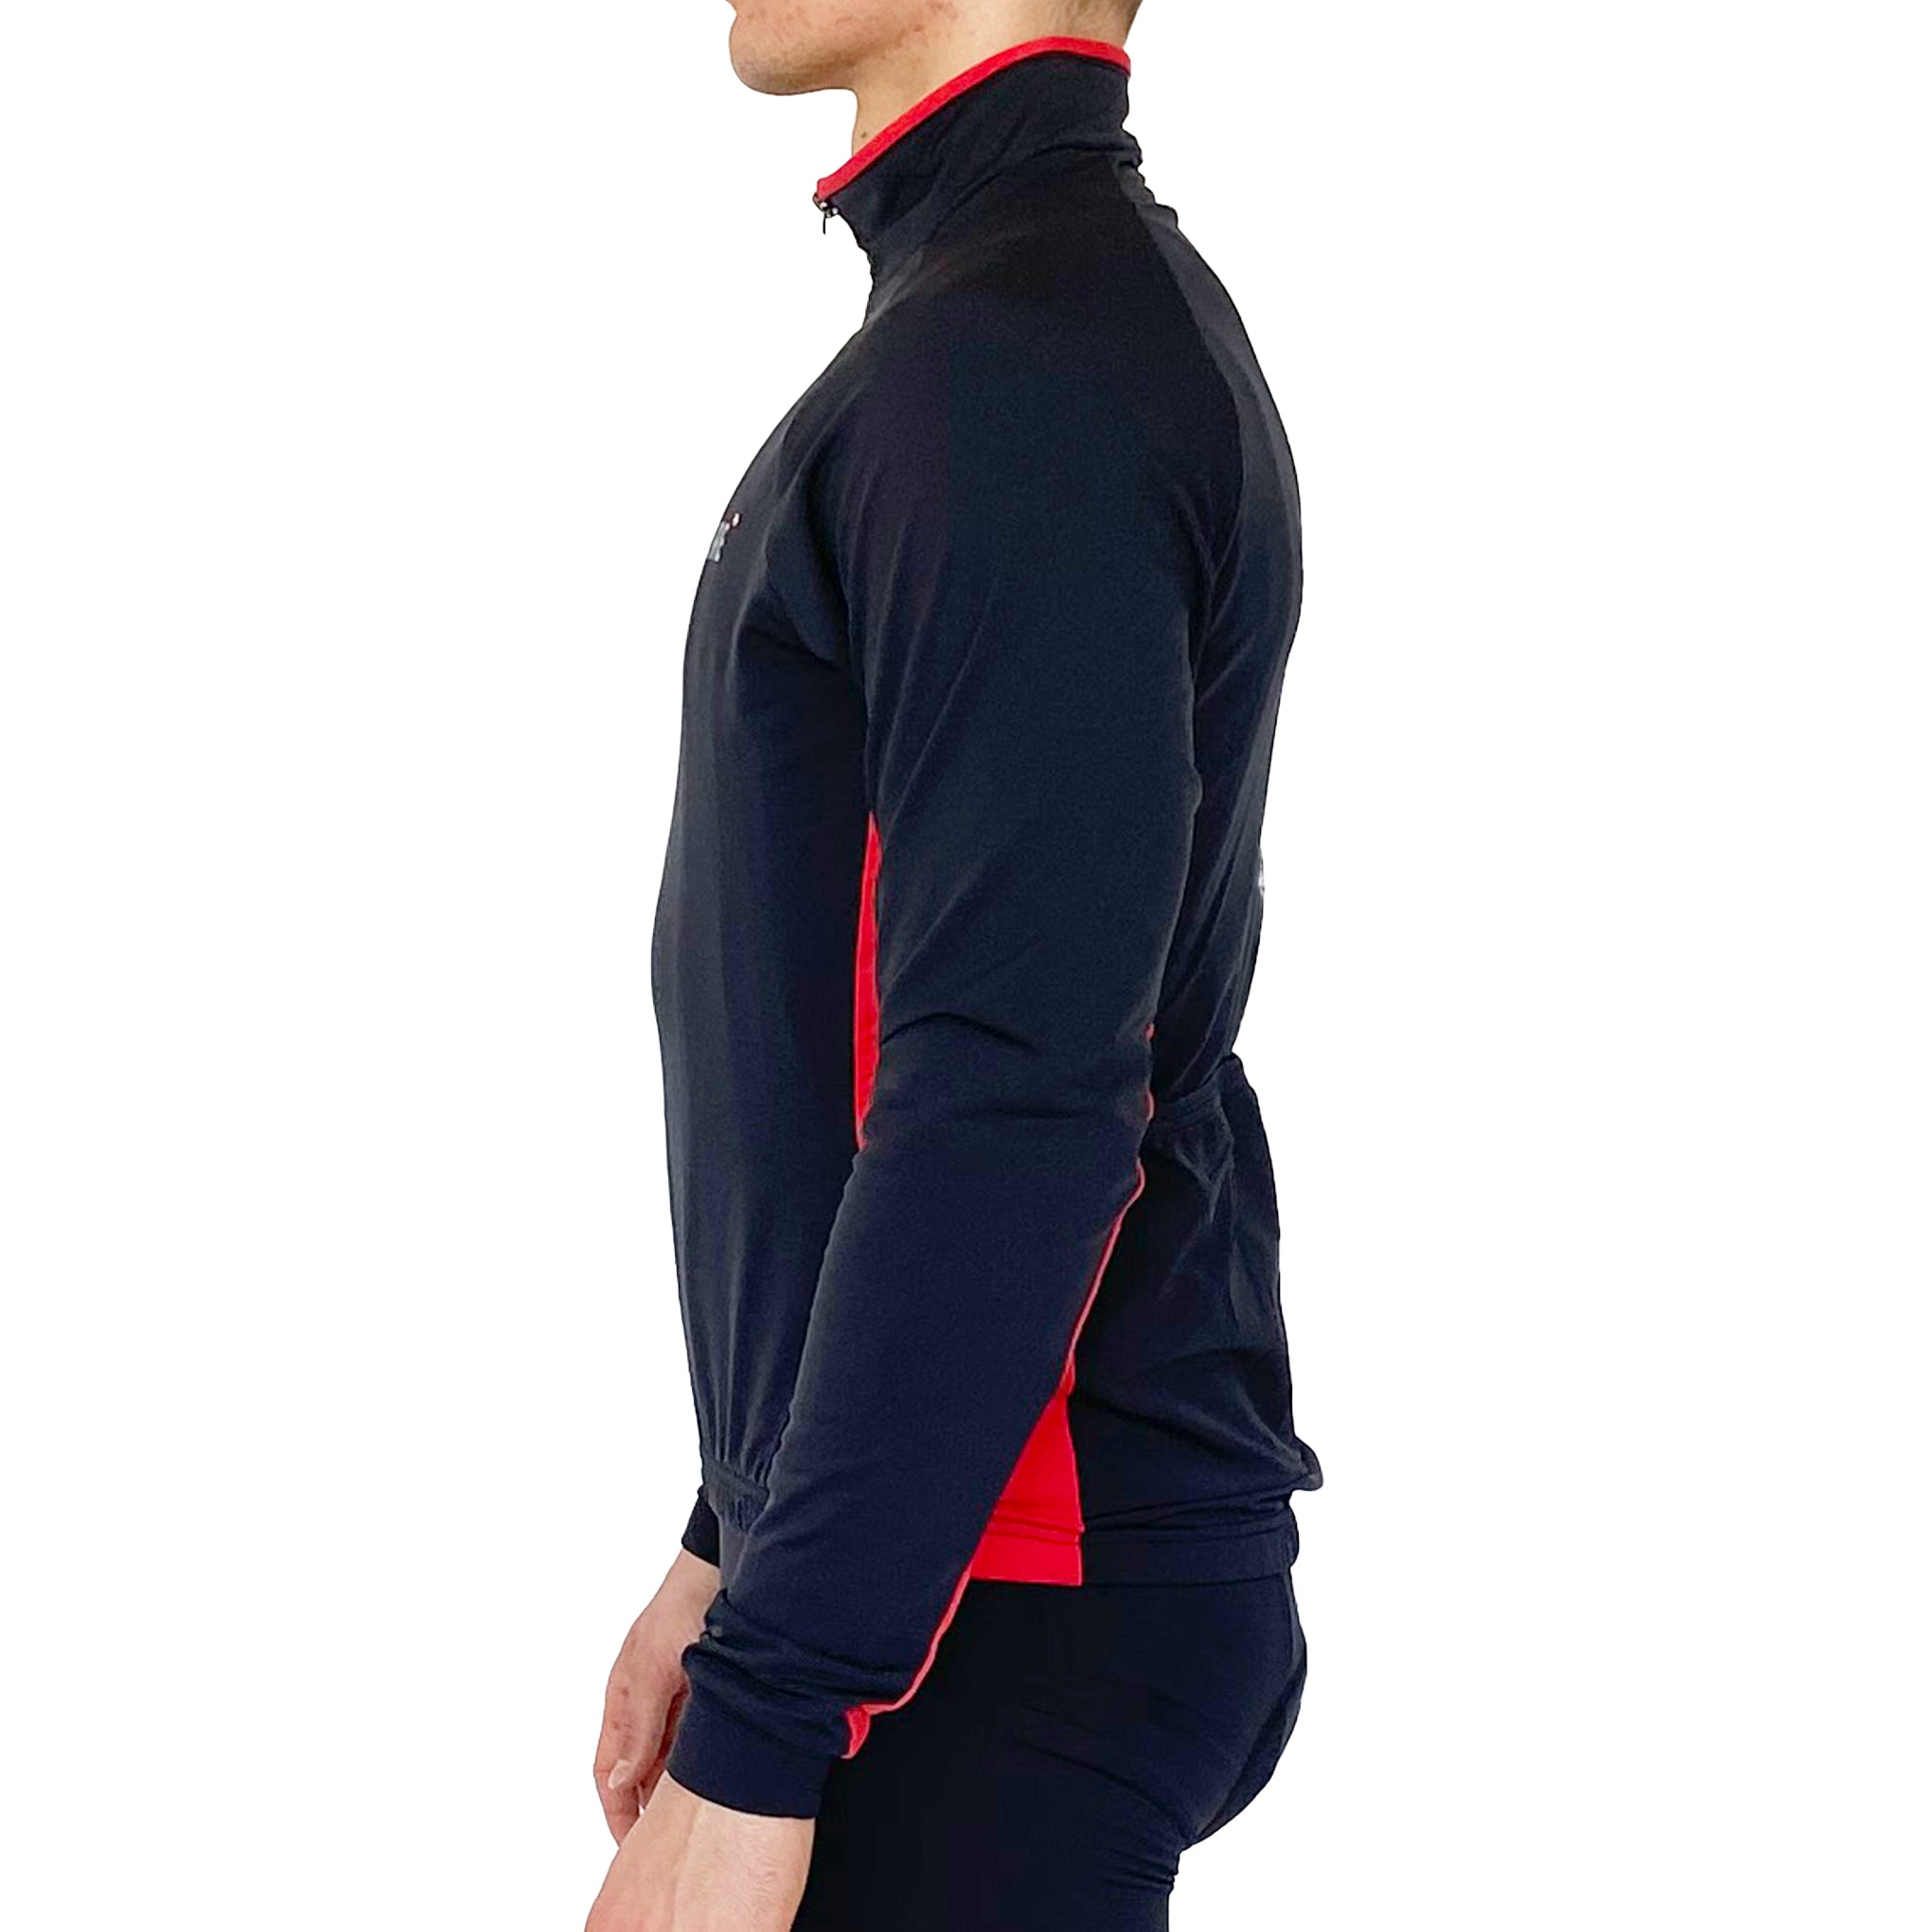 Gymstore Black/Red Cycling Full Sleeve Jersey